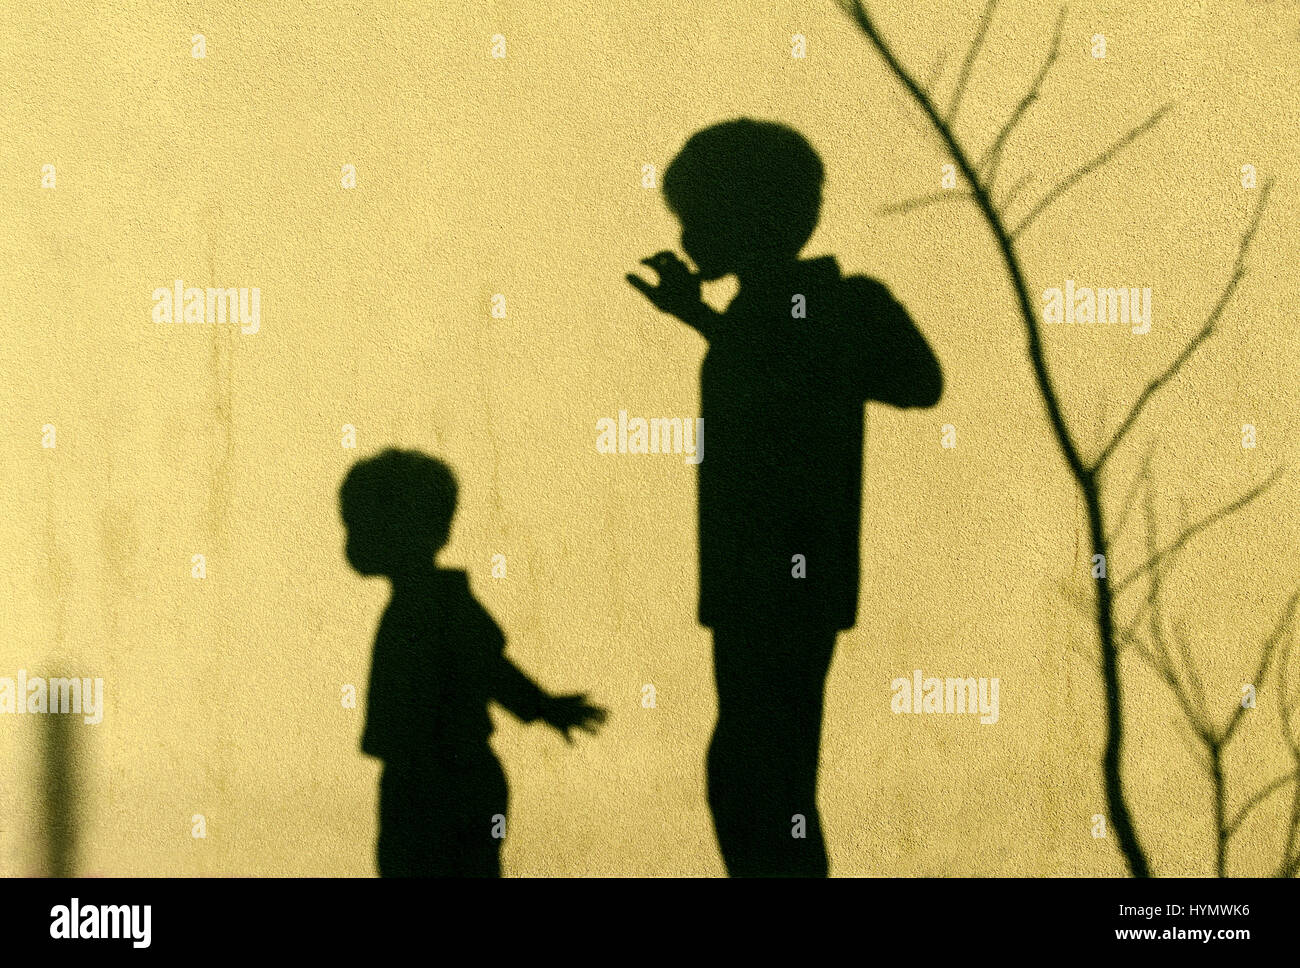 Shadows of children playing on the wall Stock Photo: 137527466 - Alamy